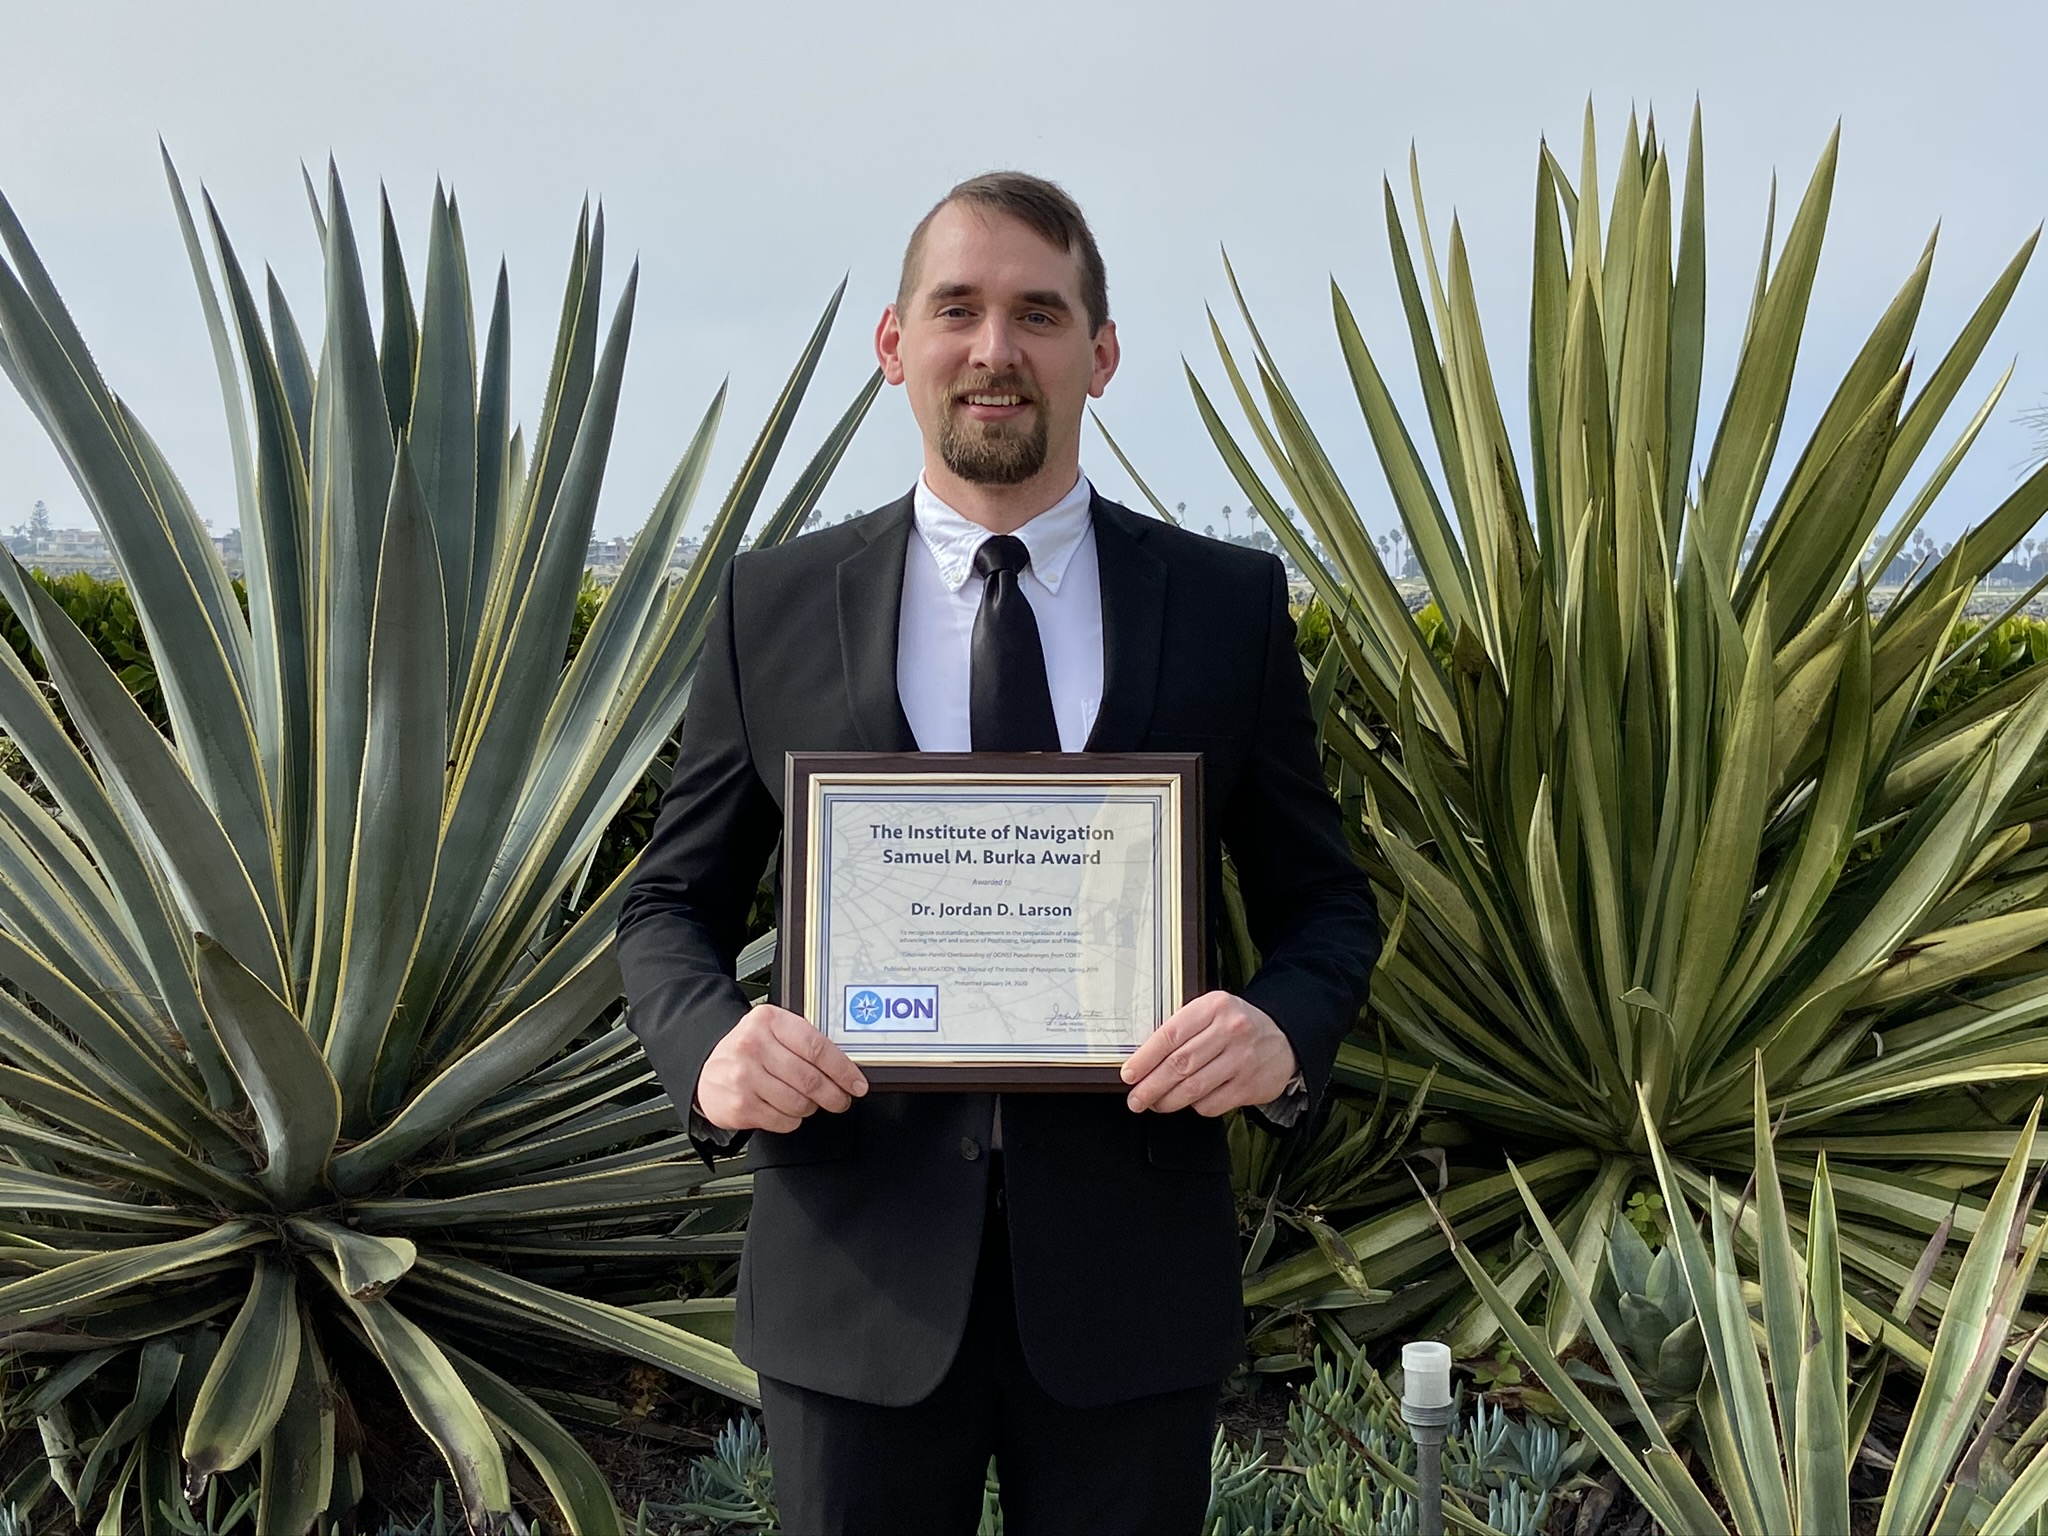 A man holds a plaque award in front of southwestern vegetation